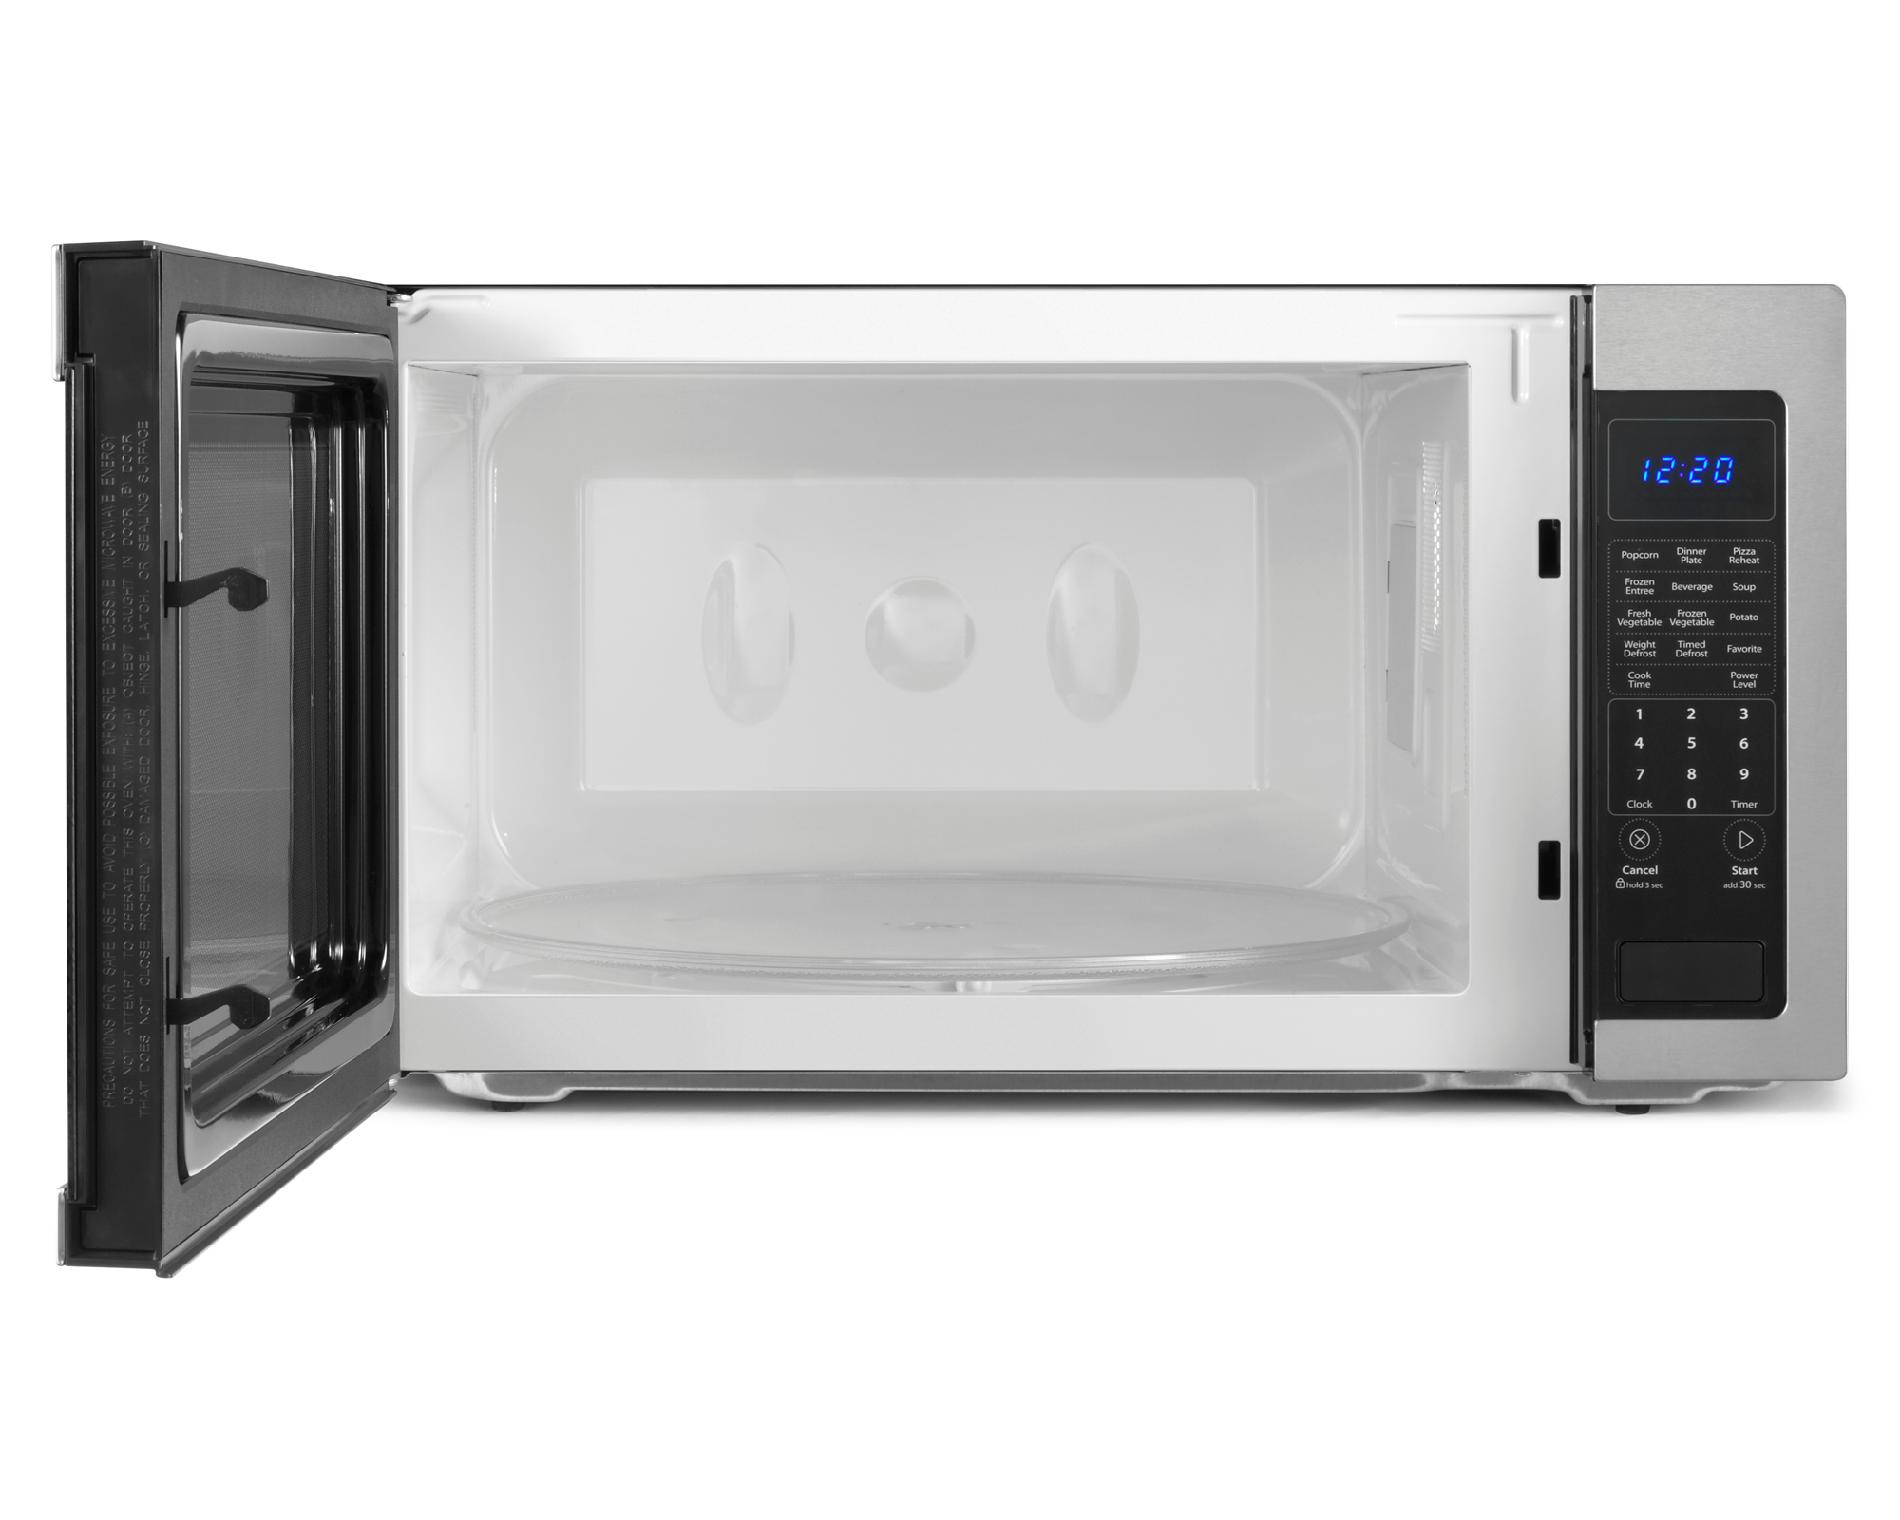 Whirlpool WMC50522AS 2.2 cu. ft. Countertop Microwave w/ Sensor Cooking - Stainless Steel